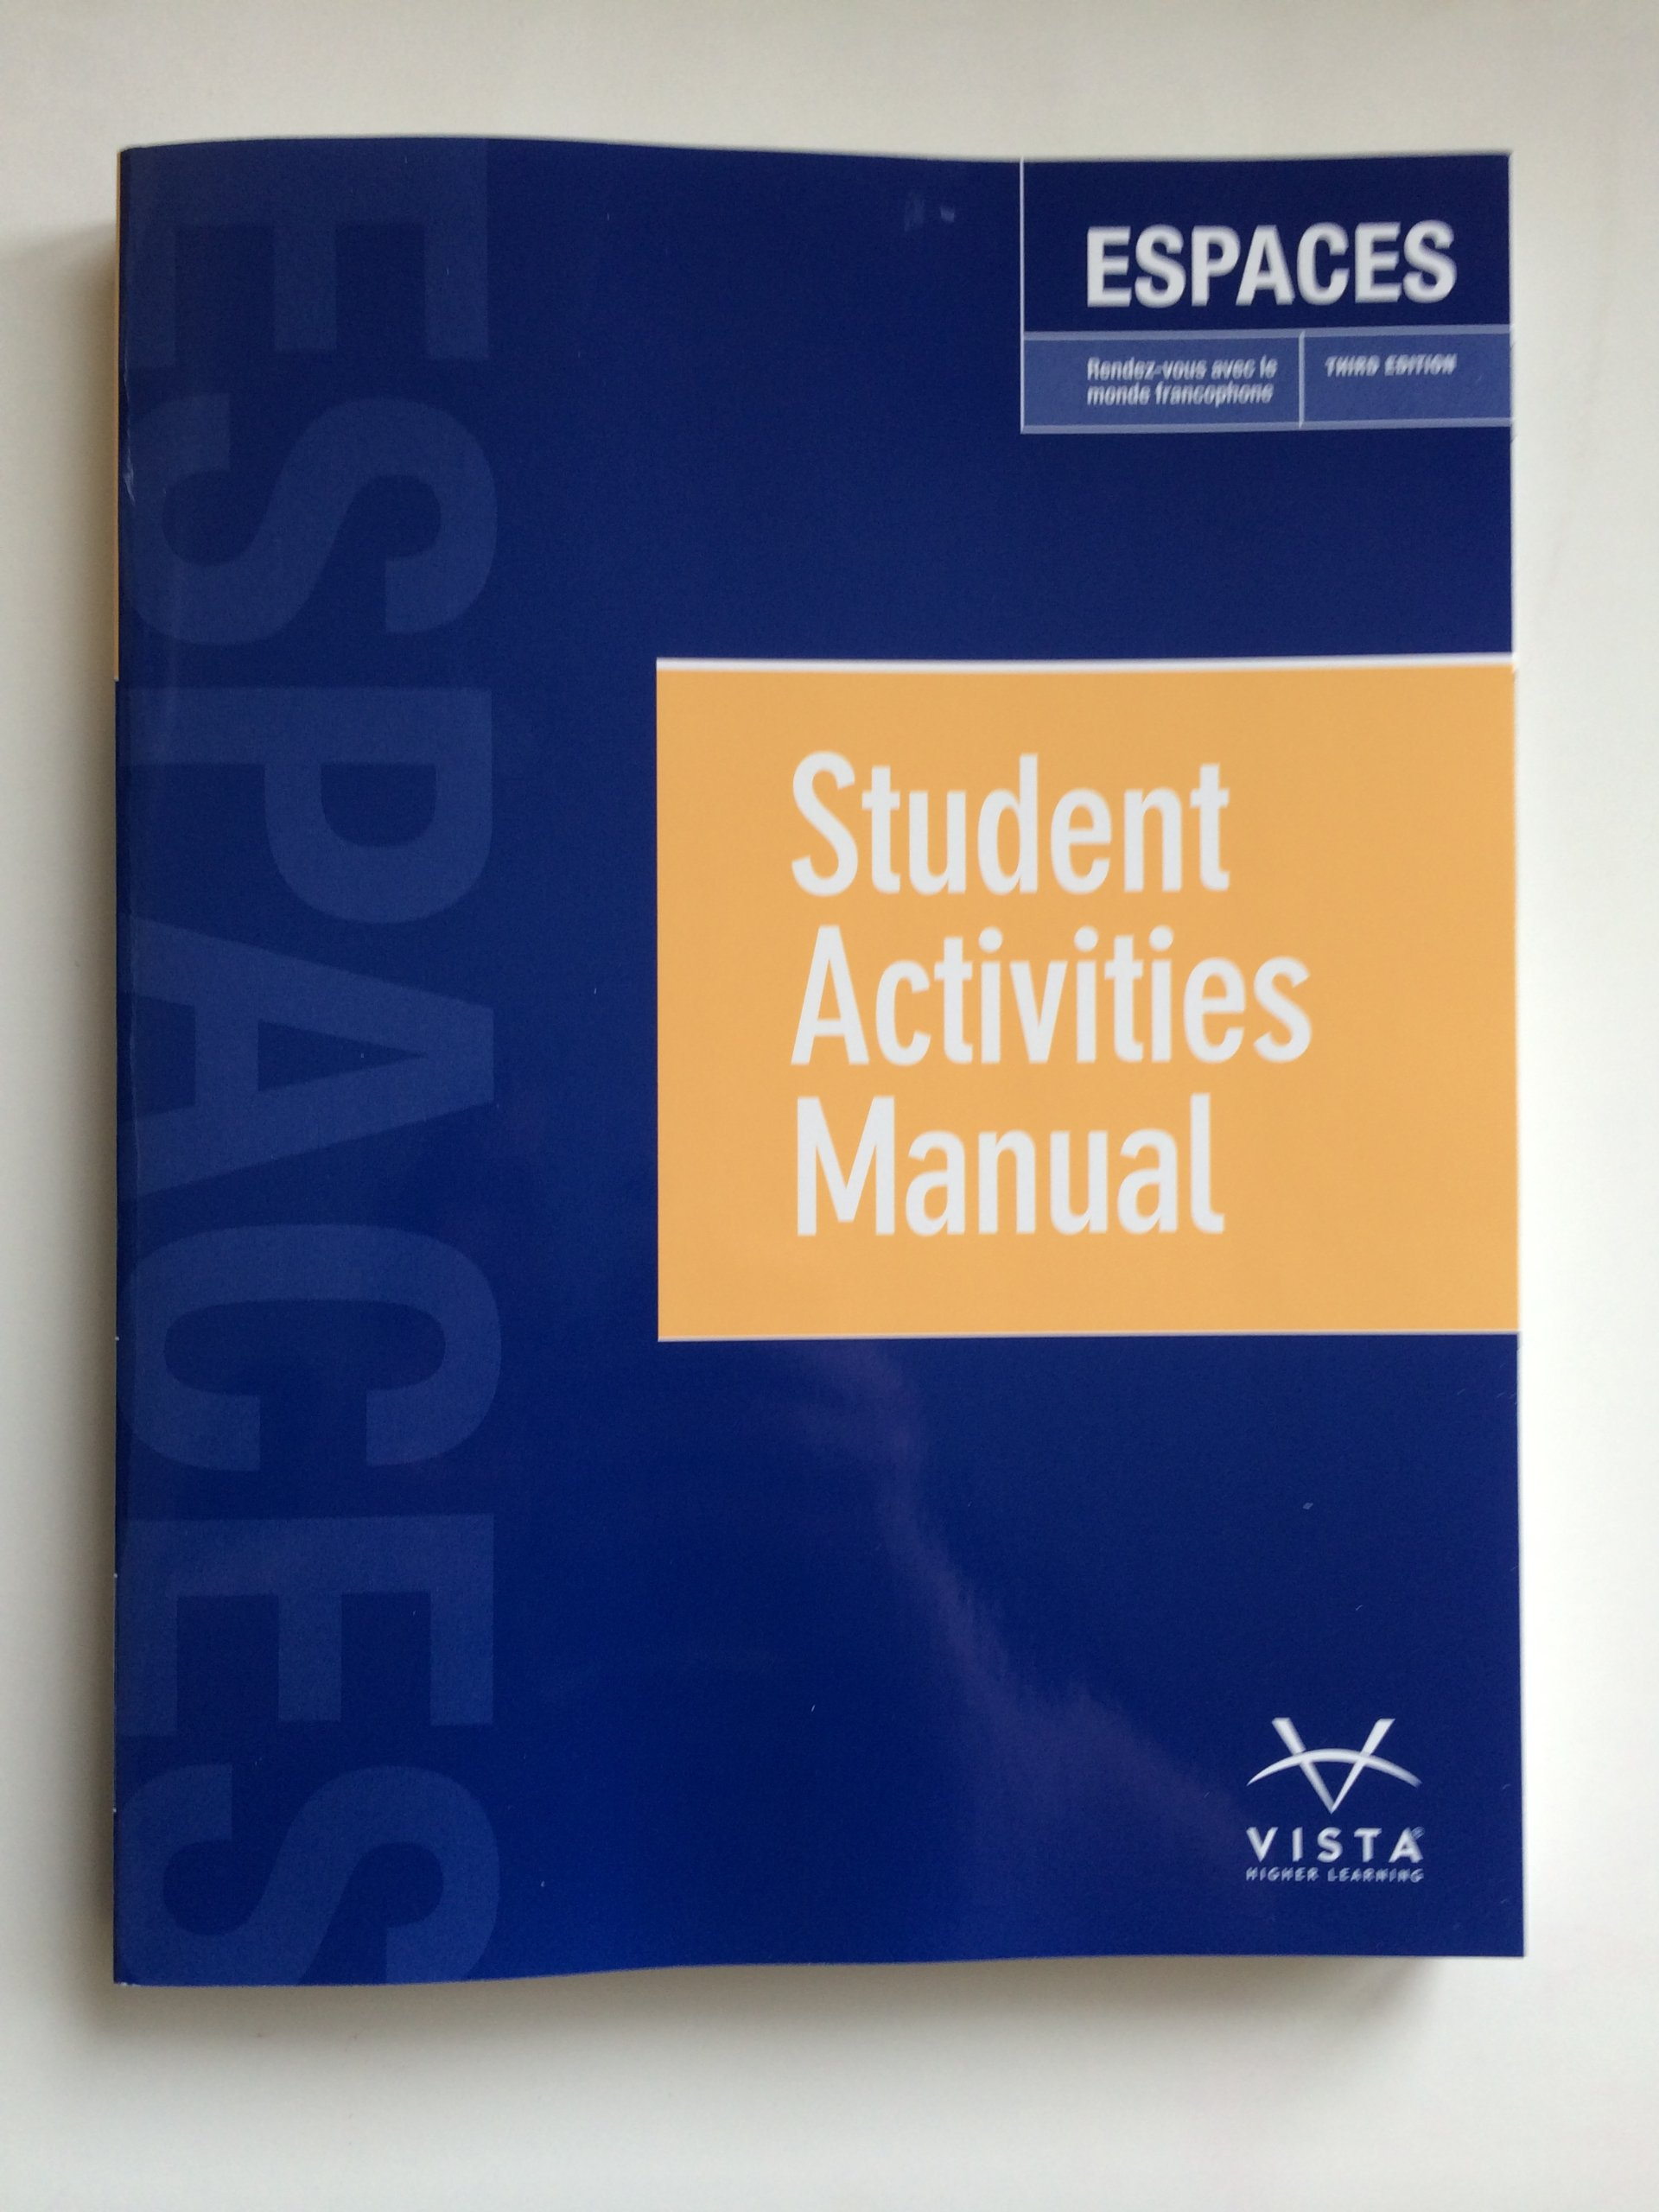 Espaces student manual vhl 9781626800366 amazon books fandeluxe Choice Image